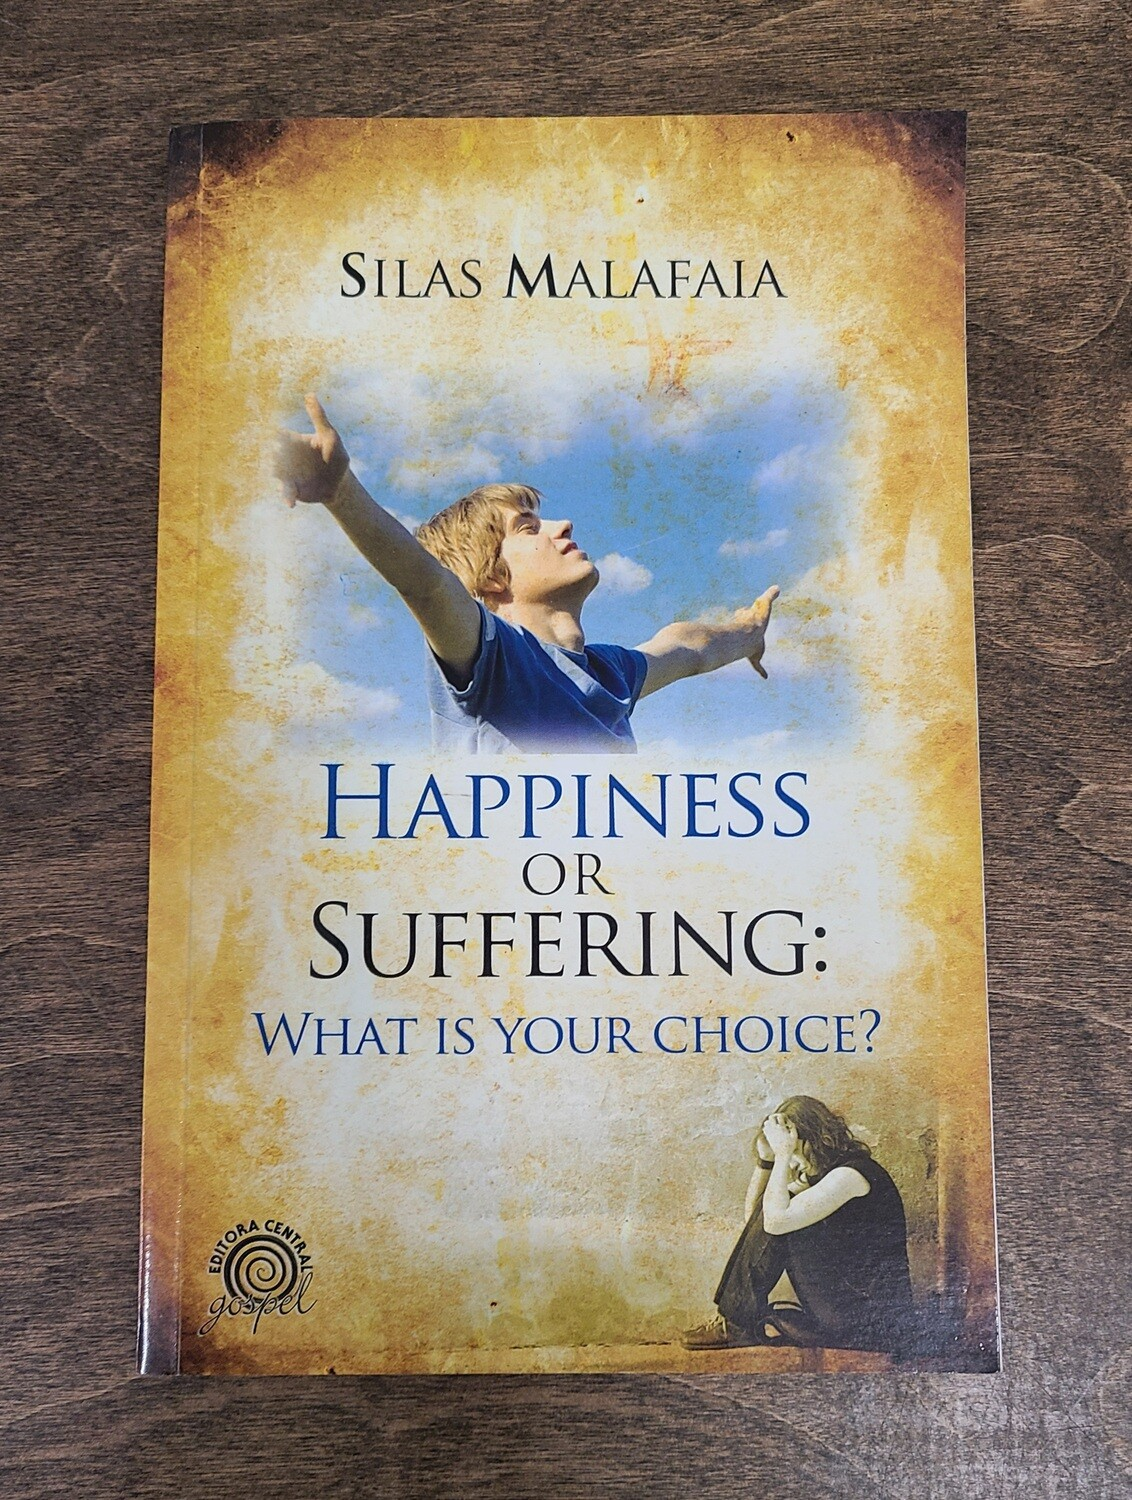 Happiness or Suffering: What is your Choice? by Silas Malafaia